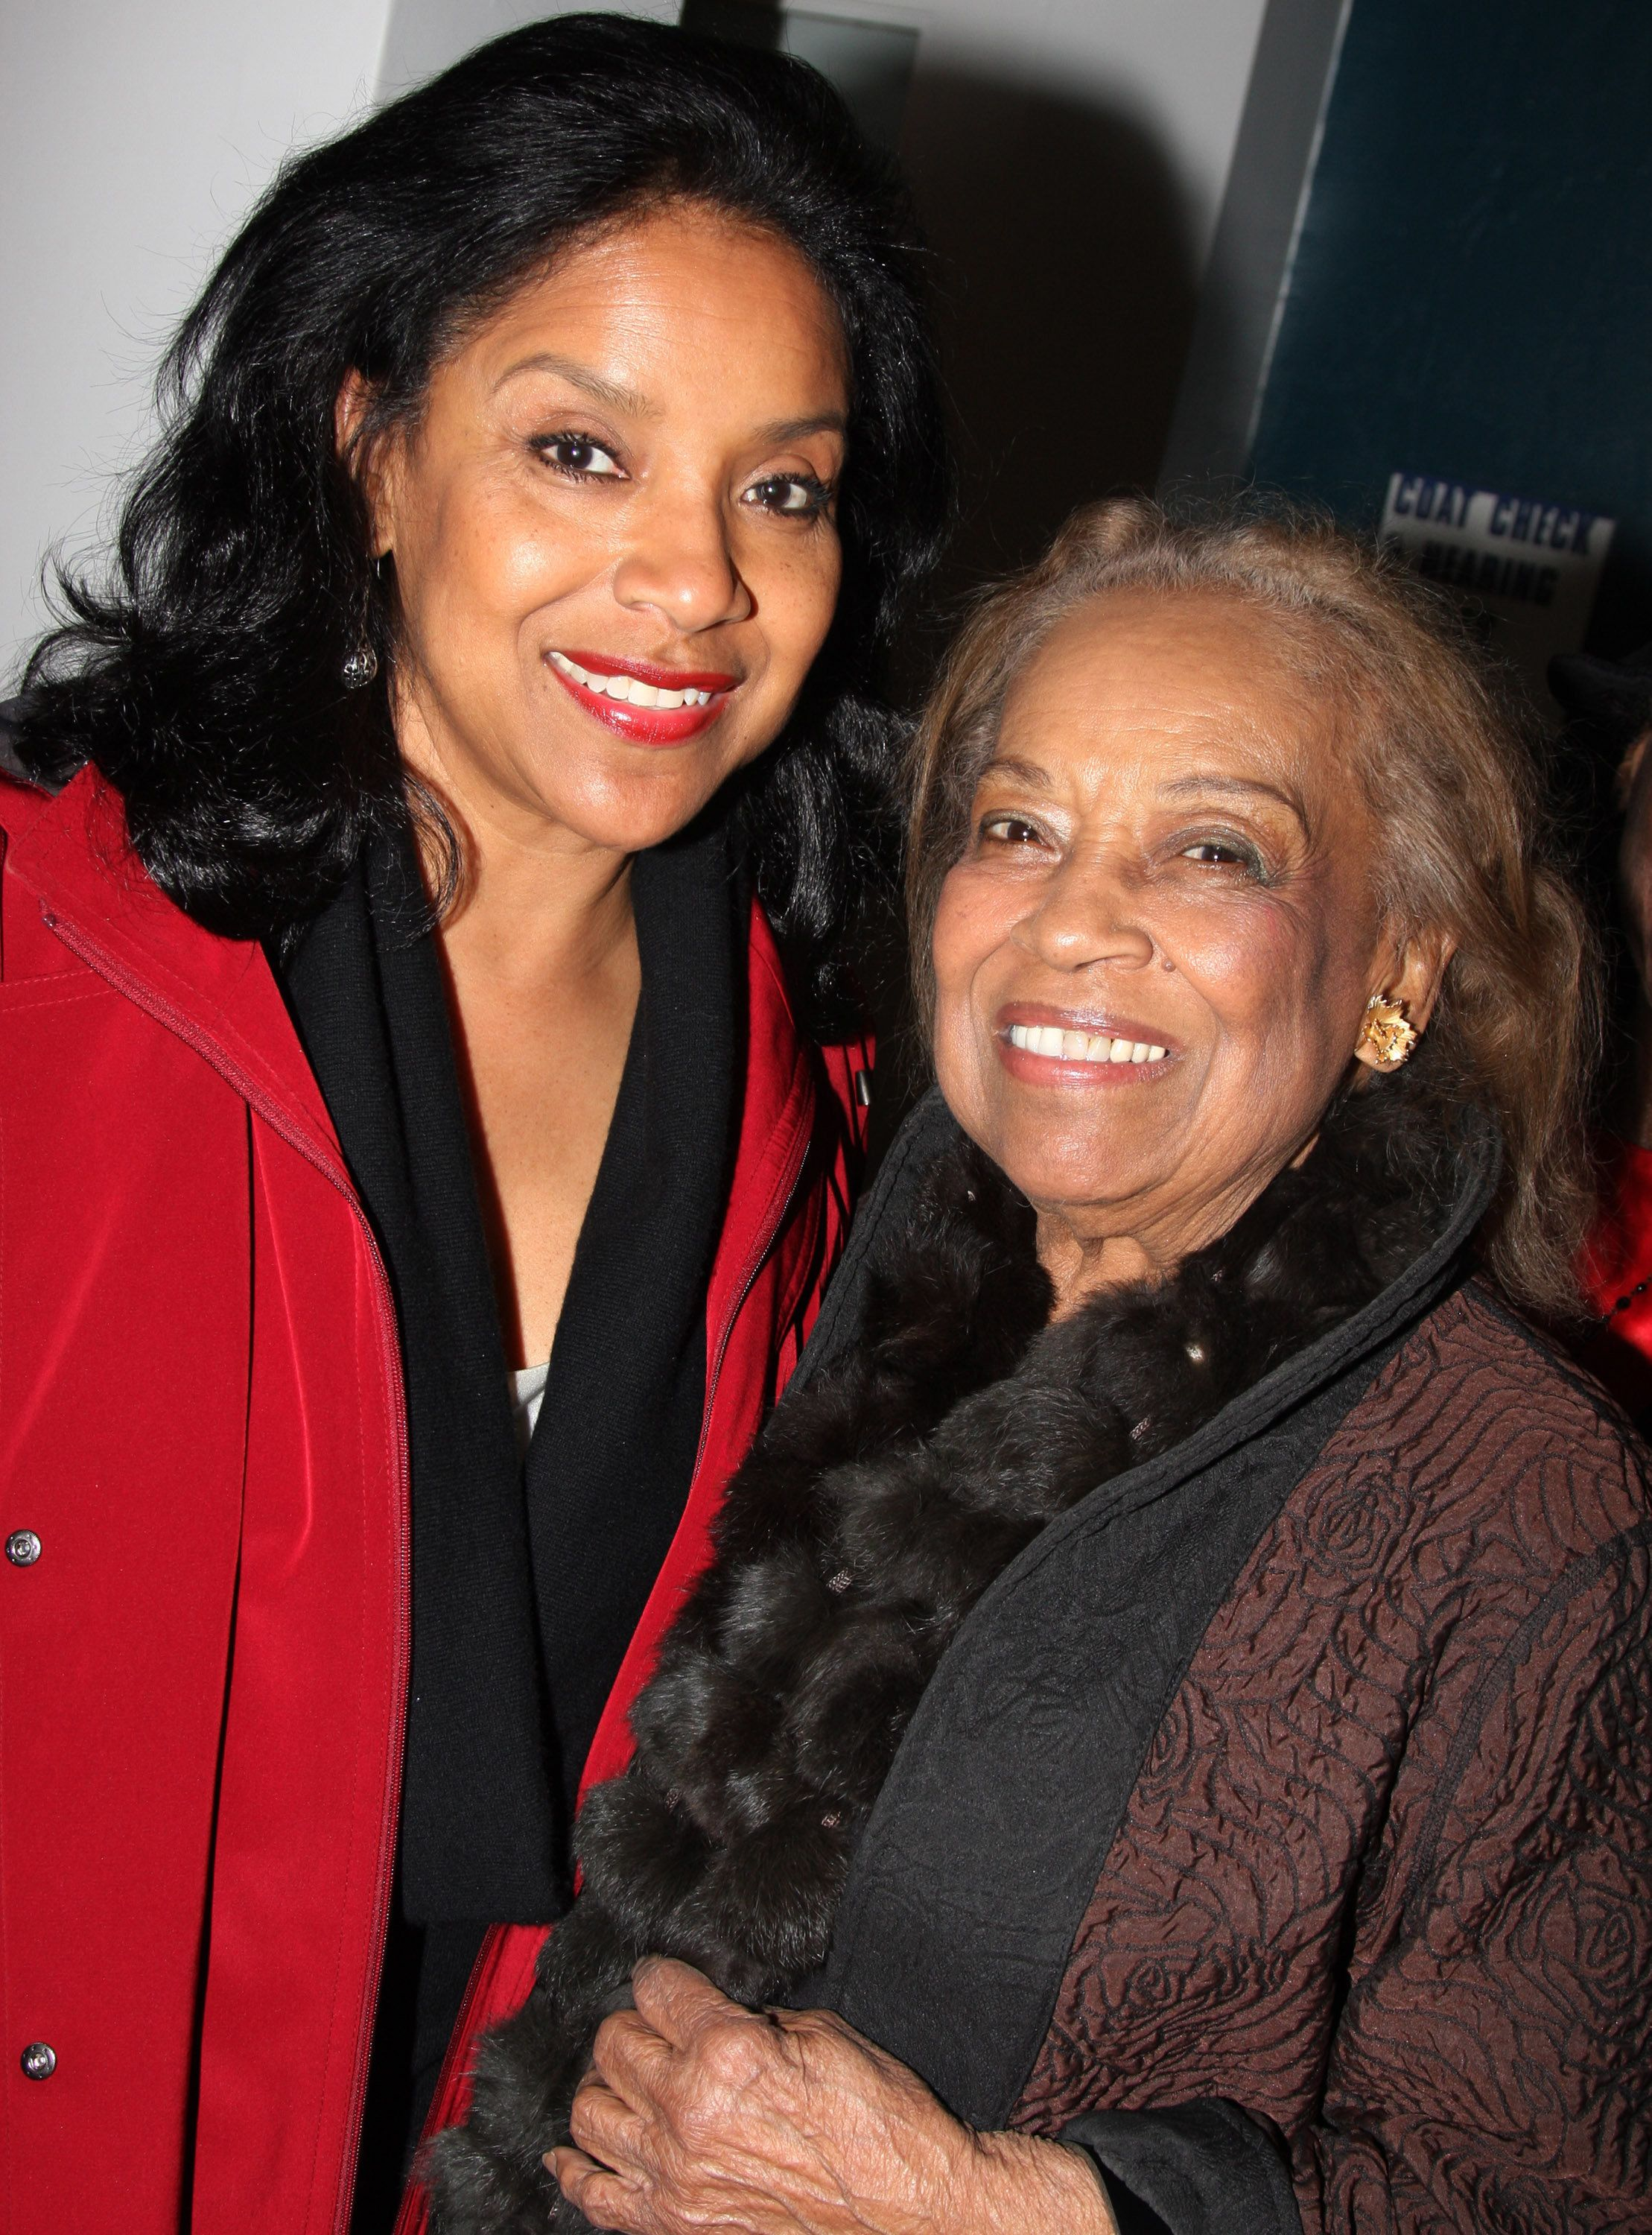 Phylicia Rashad and mother Vivian Ayers attend the Off-Broadway opening night of Ruined at the New York City Center on February 10, 2009 in New York City. (Photo by Bruce Glikas/FilmMagic)